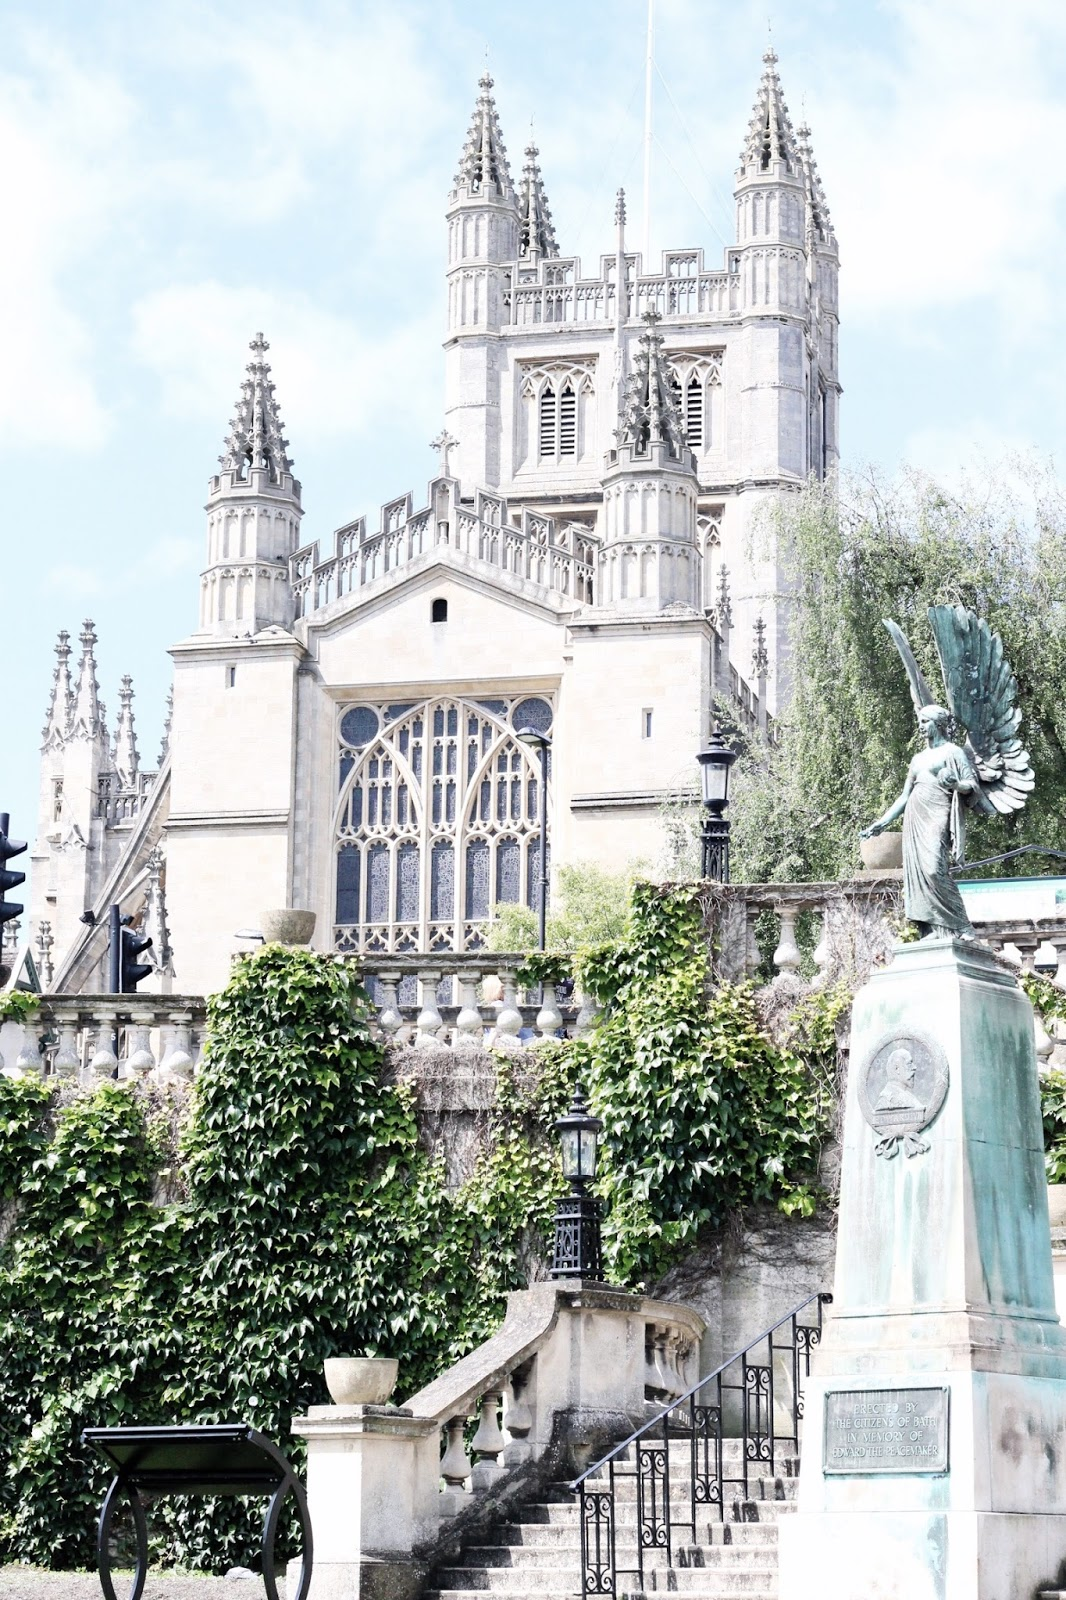 Views of Bath Abbey from the Parade Gardens